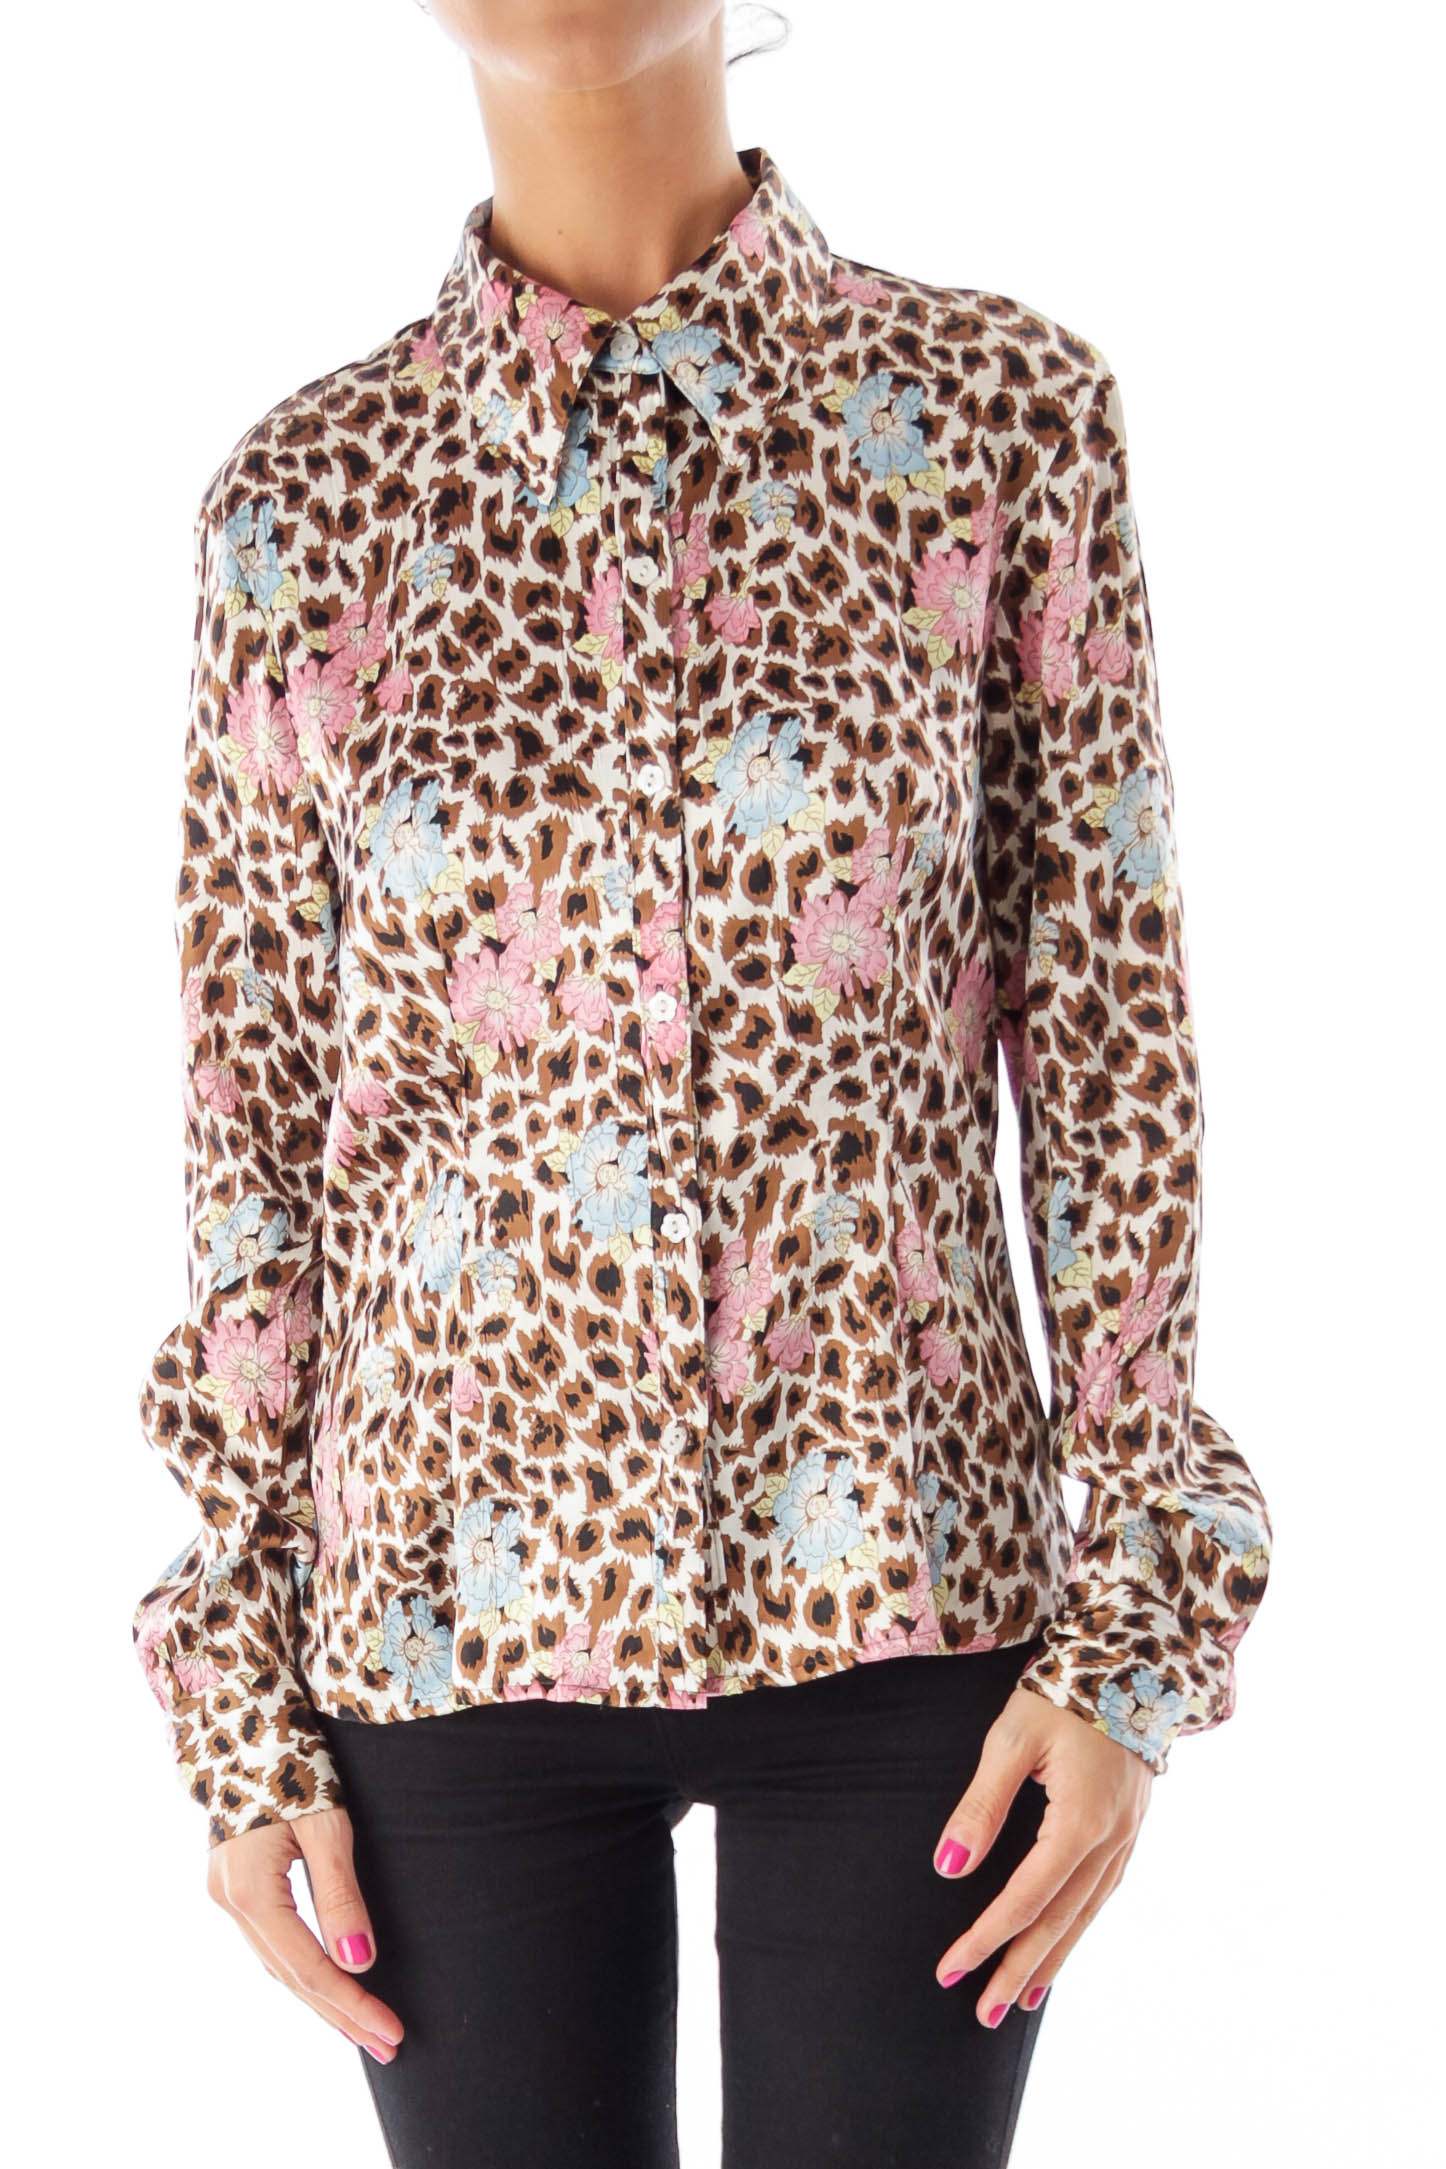 Animal Print & Floral Blouse